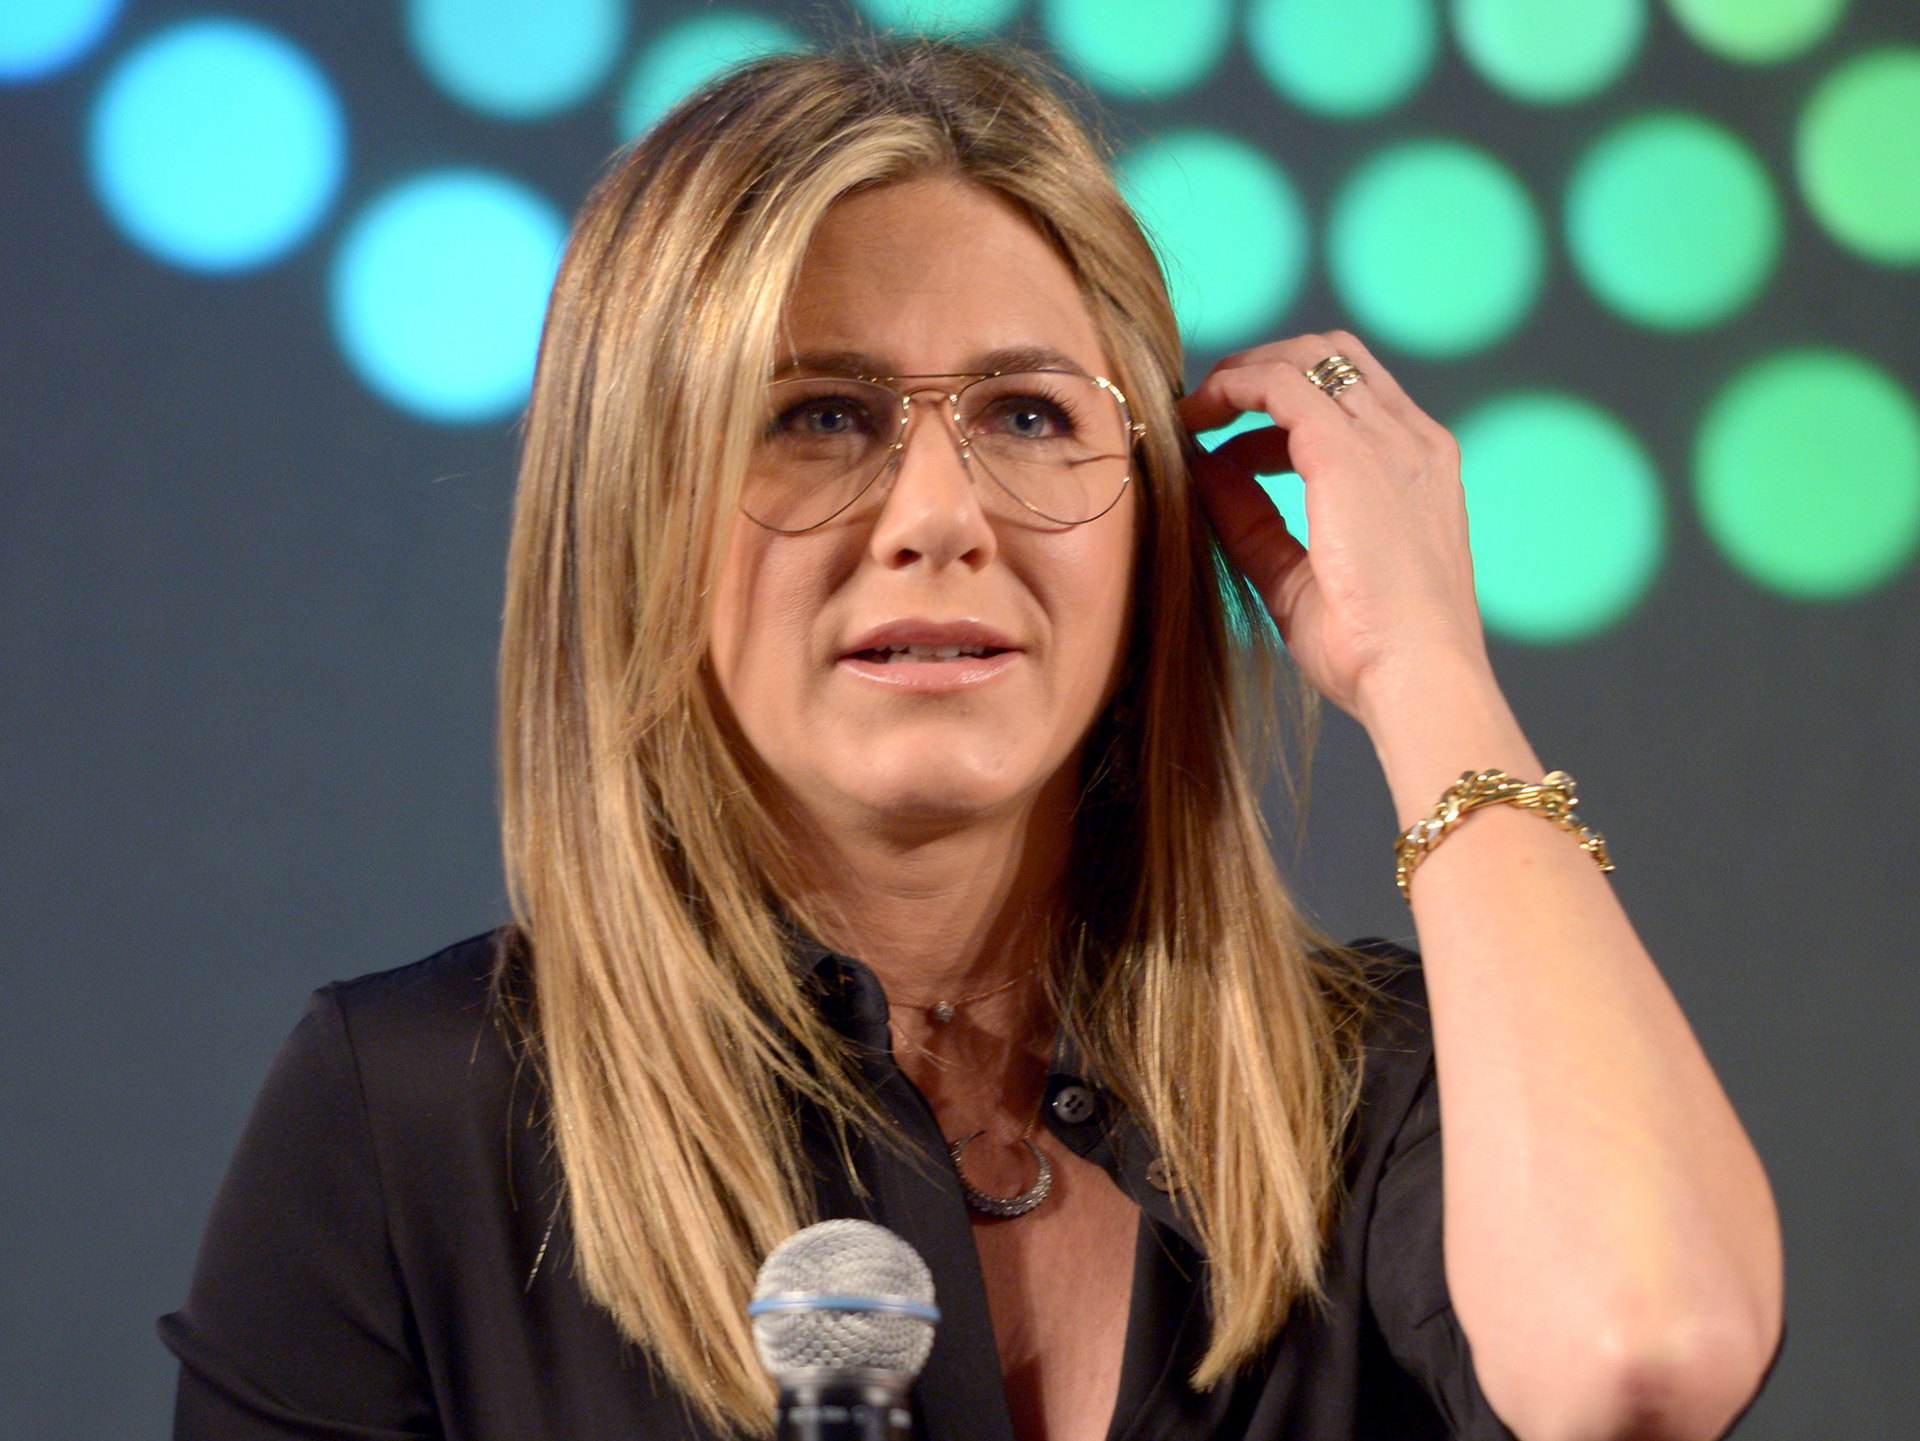 Jennifer Aniston Makes 'SNL' Cameo, Calls Out Vanessa Bayer's Rachel from 'Friends'!